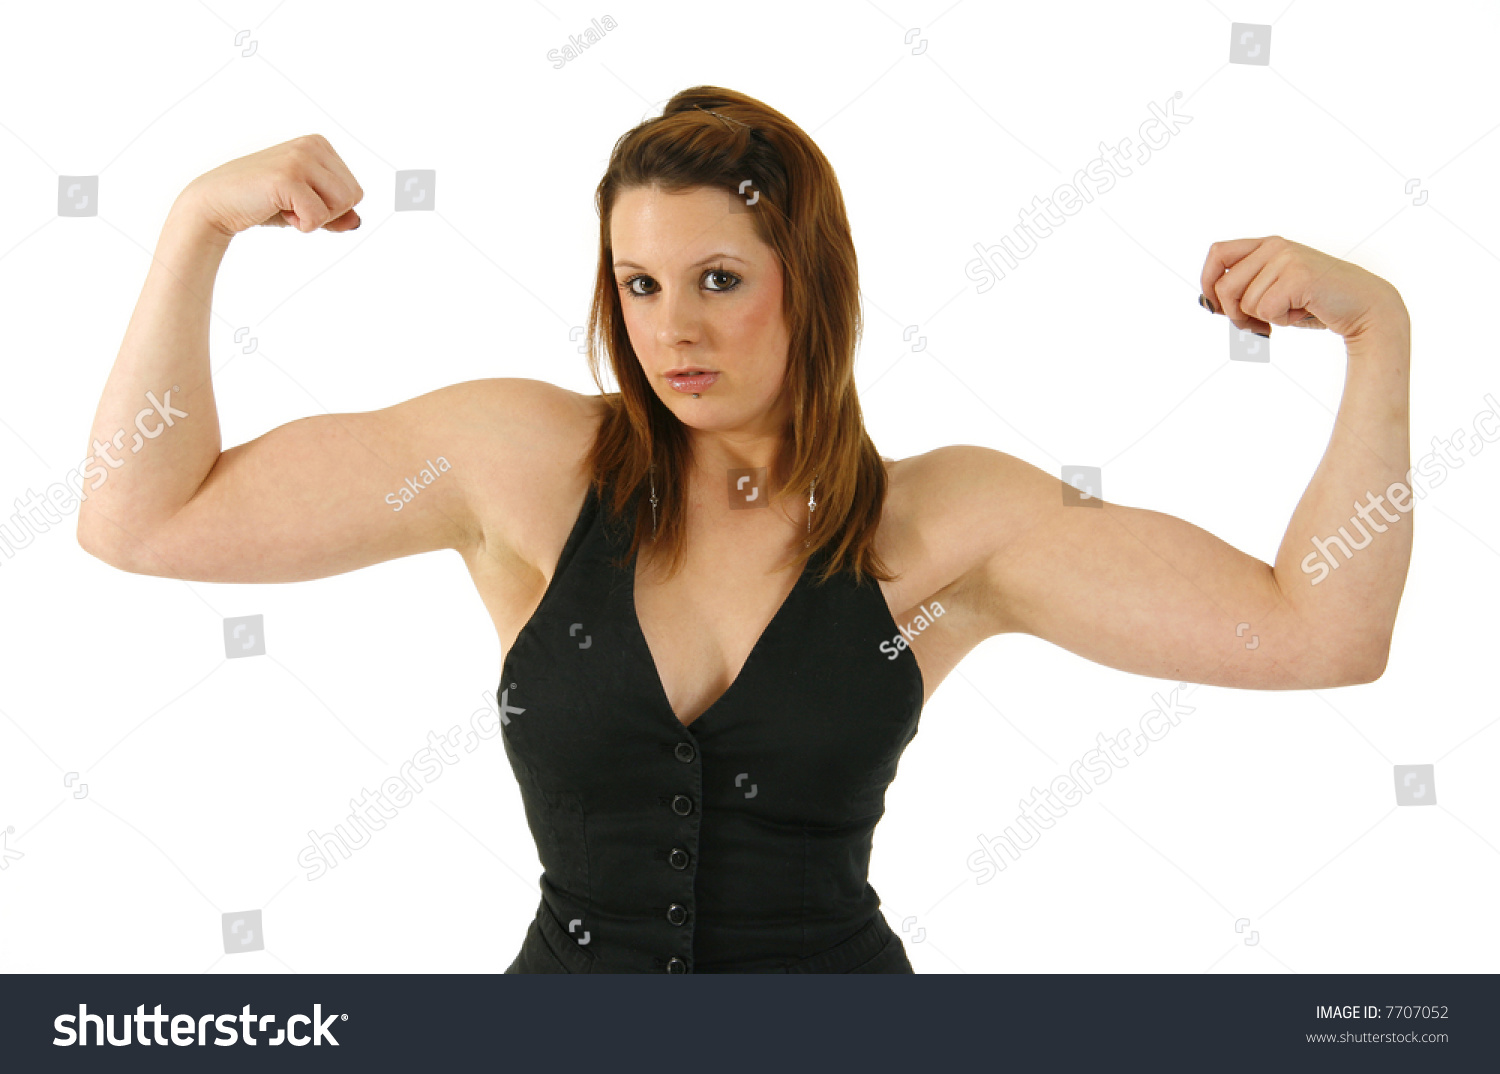 Showing muscles girls Young